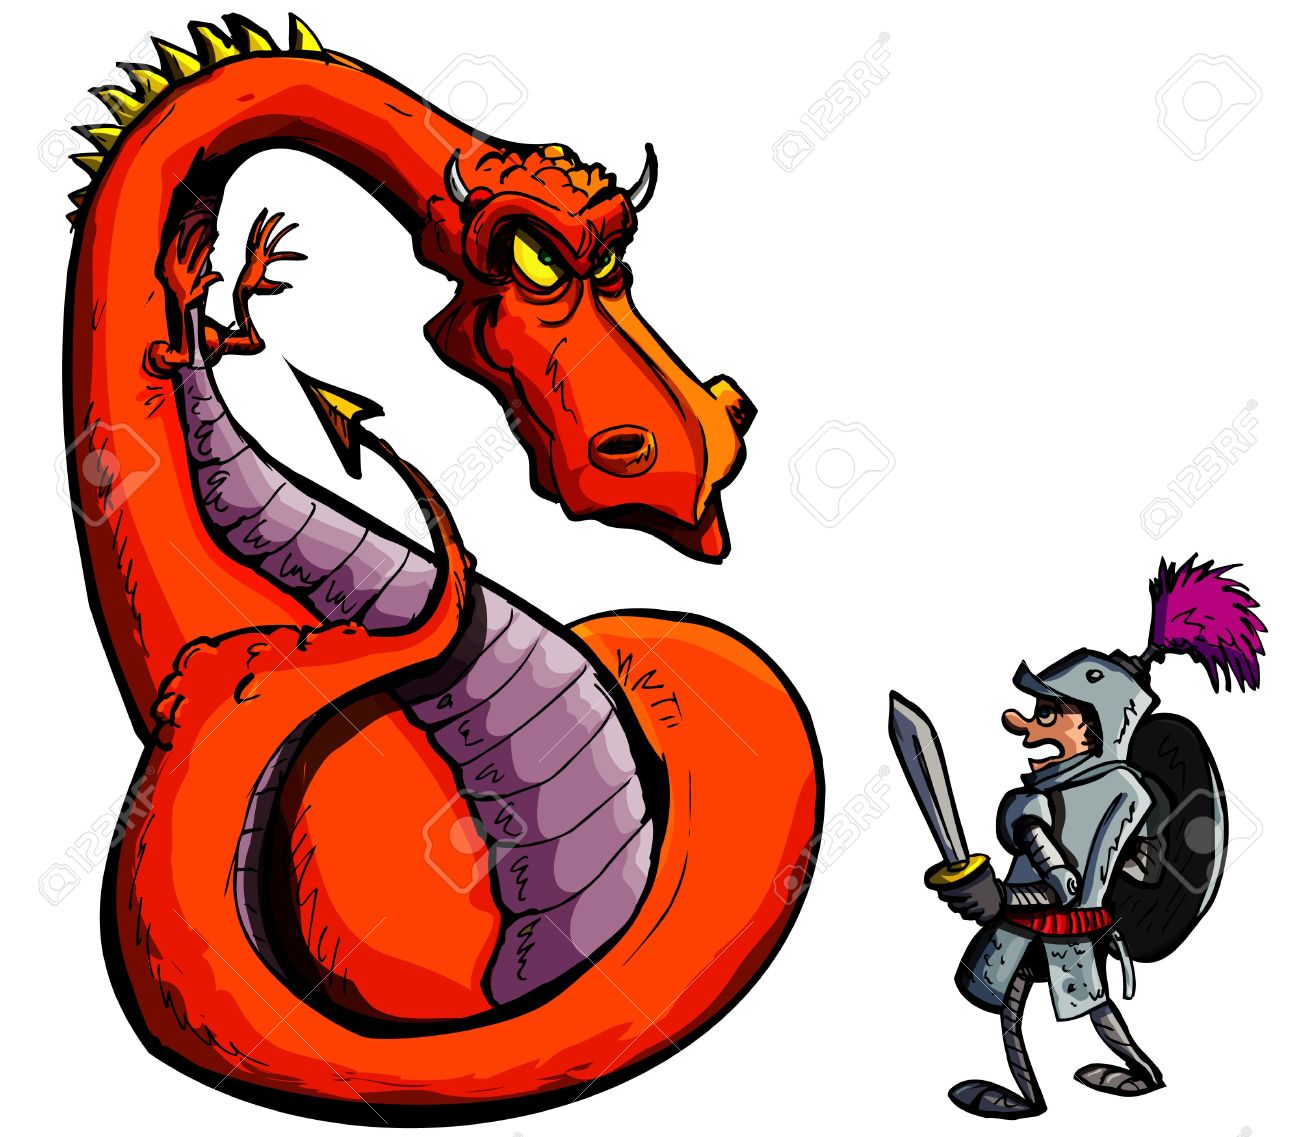 1300x1137 565 Fierce Dragon Stock Illustrations, Cliparts And Royalty Free